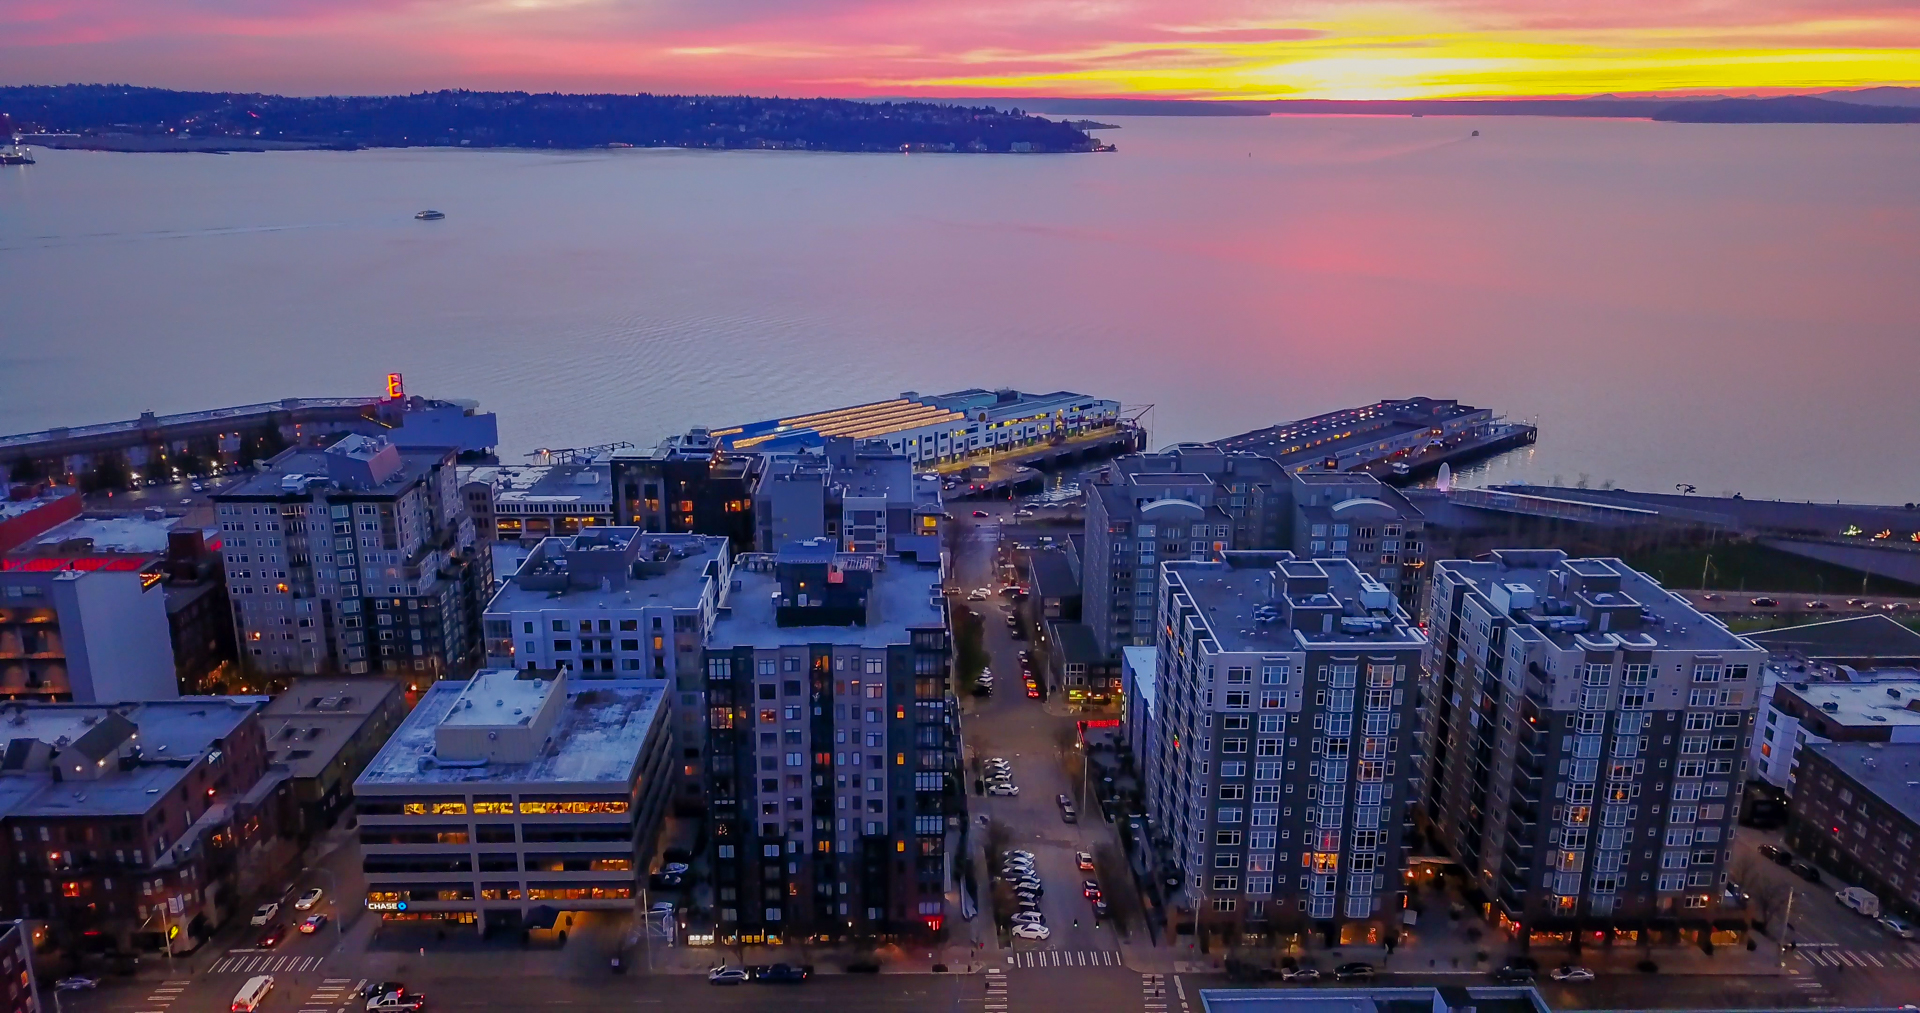 2721 1st Avenue,#1003, in Seattle. Listed by David Abernethy at Coldwell Banker Bain